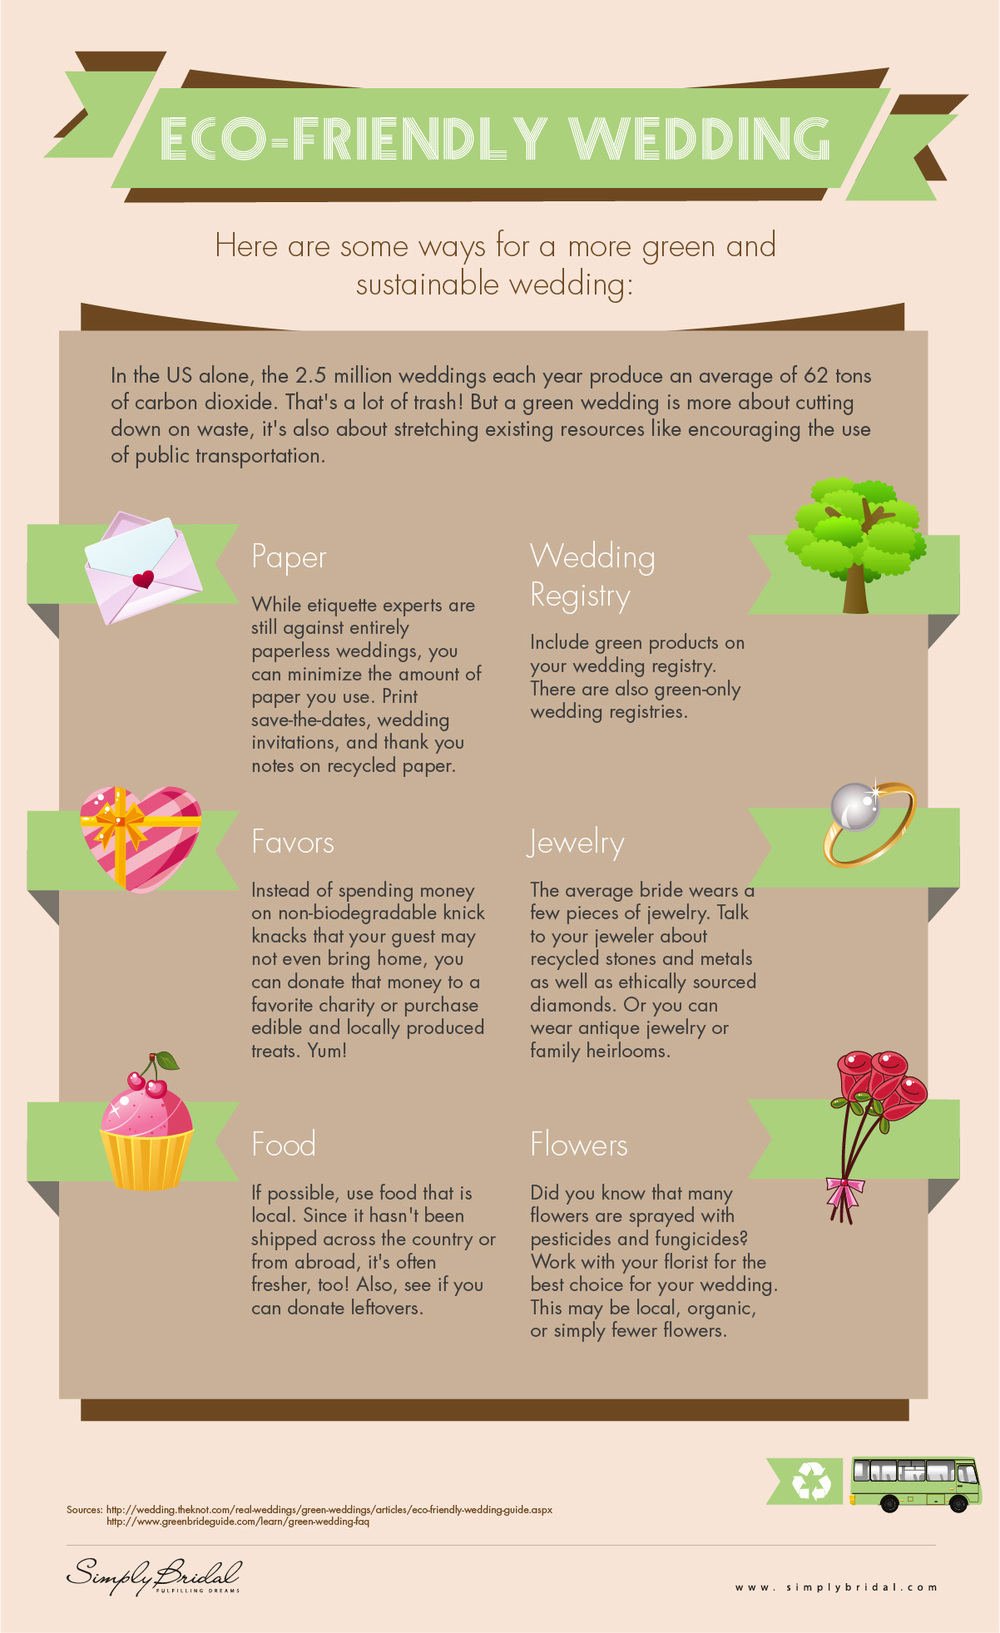 SimplyBridal Eco-Friendly Wedding Infographic